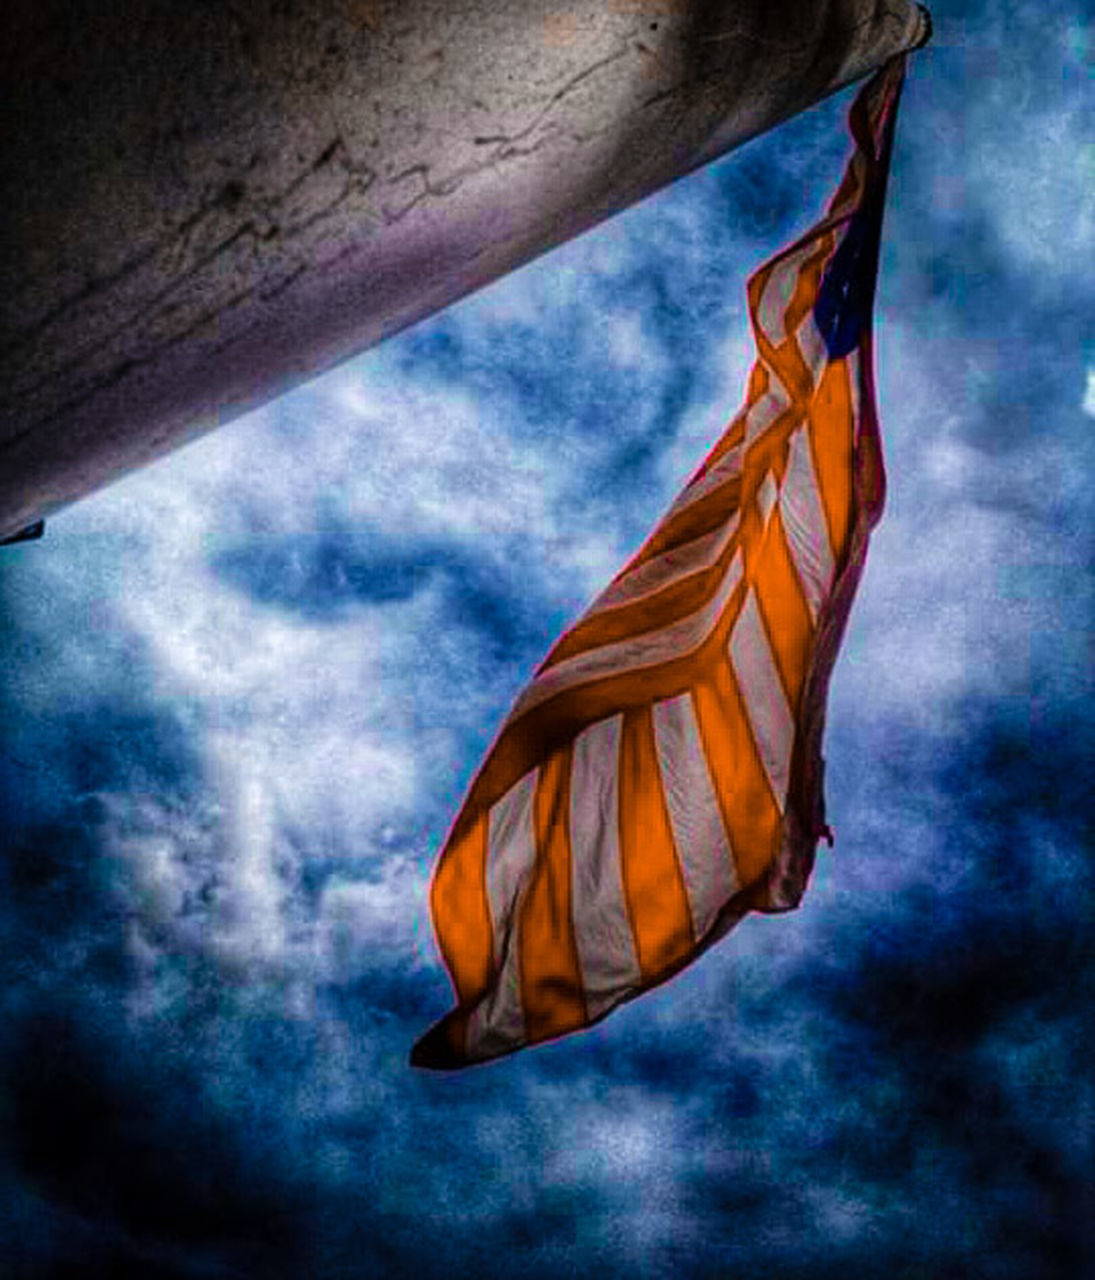 cloud - sky, low angle view, wind, flag, textile, no people, sky, day, blue, outdoors